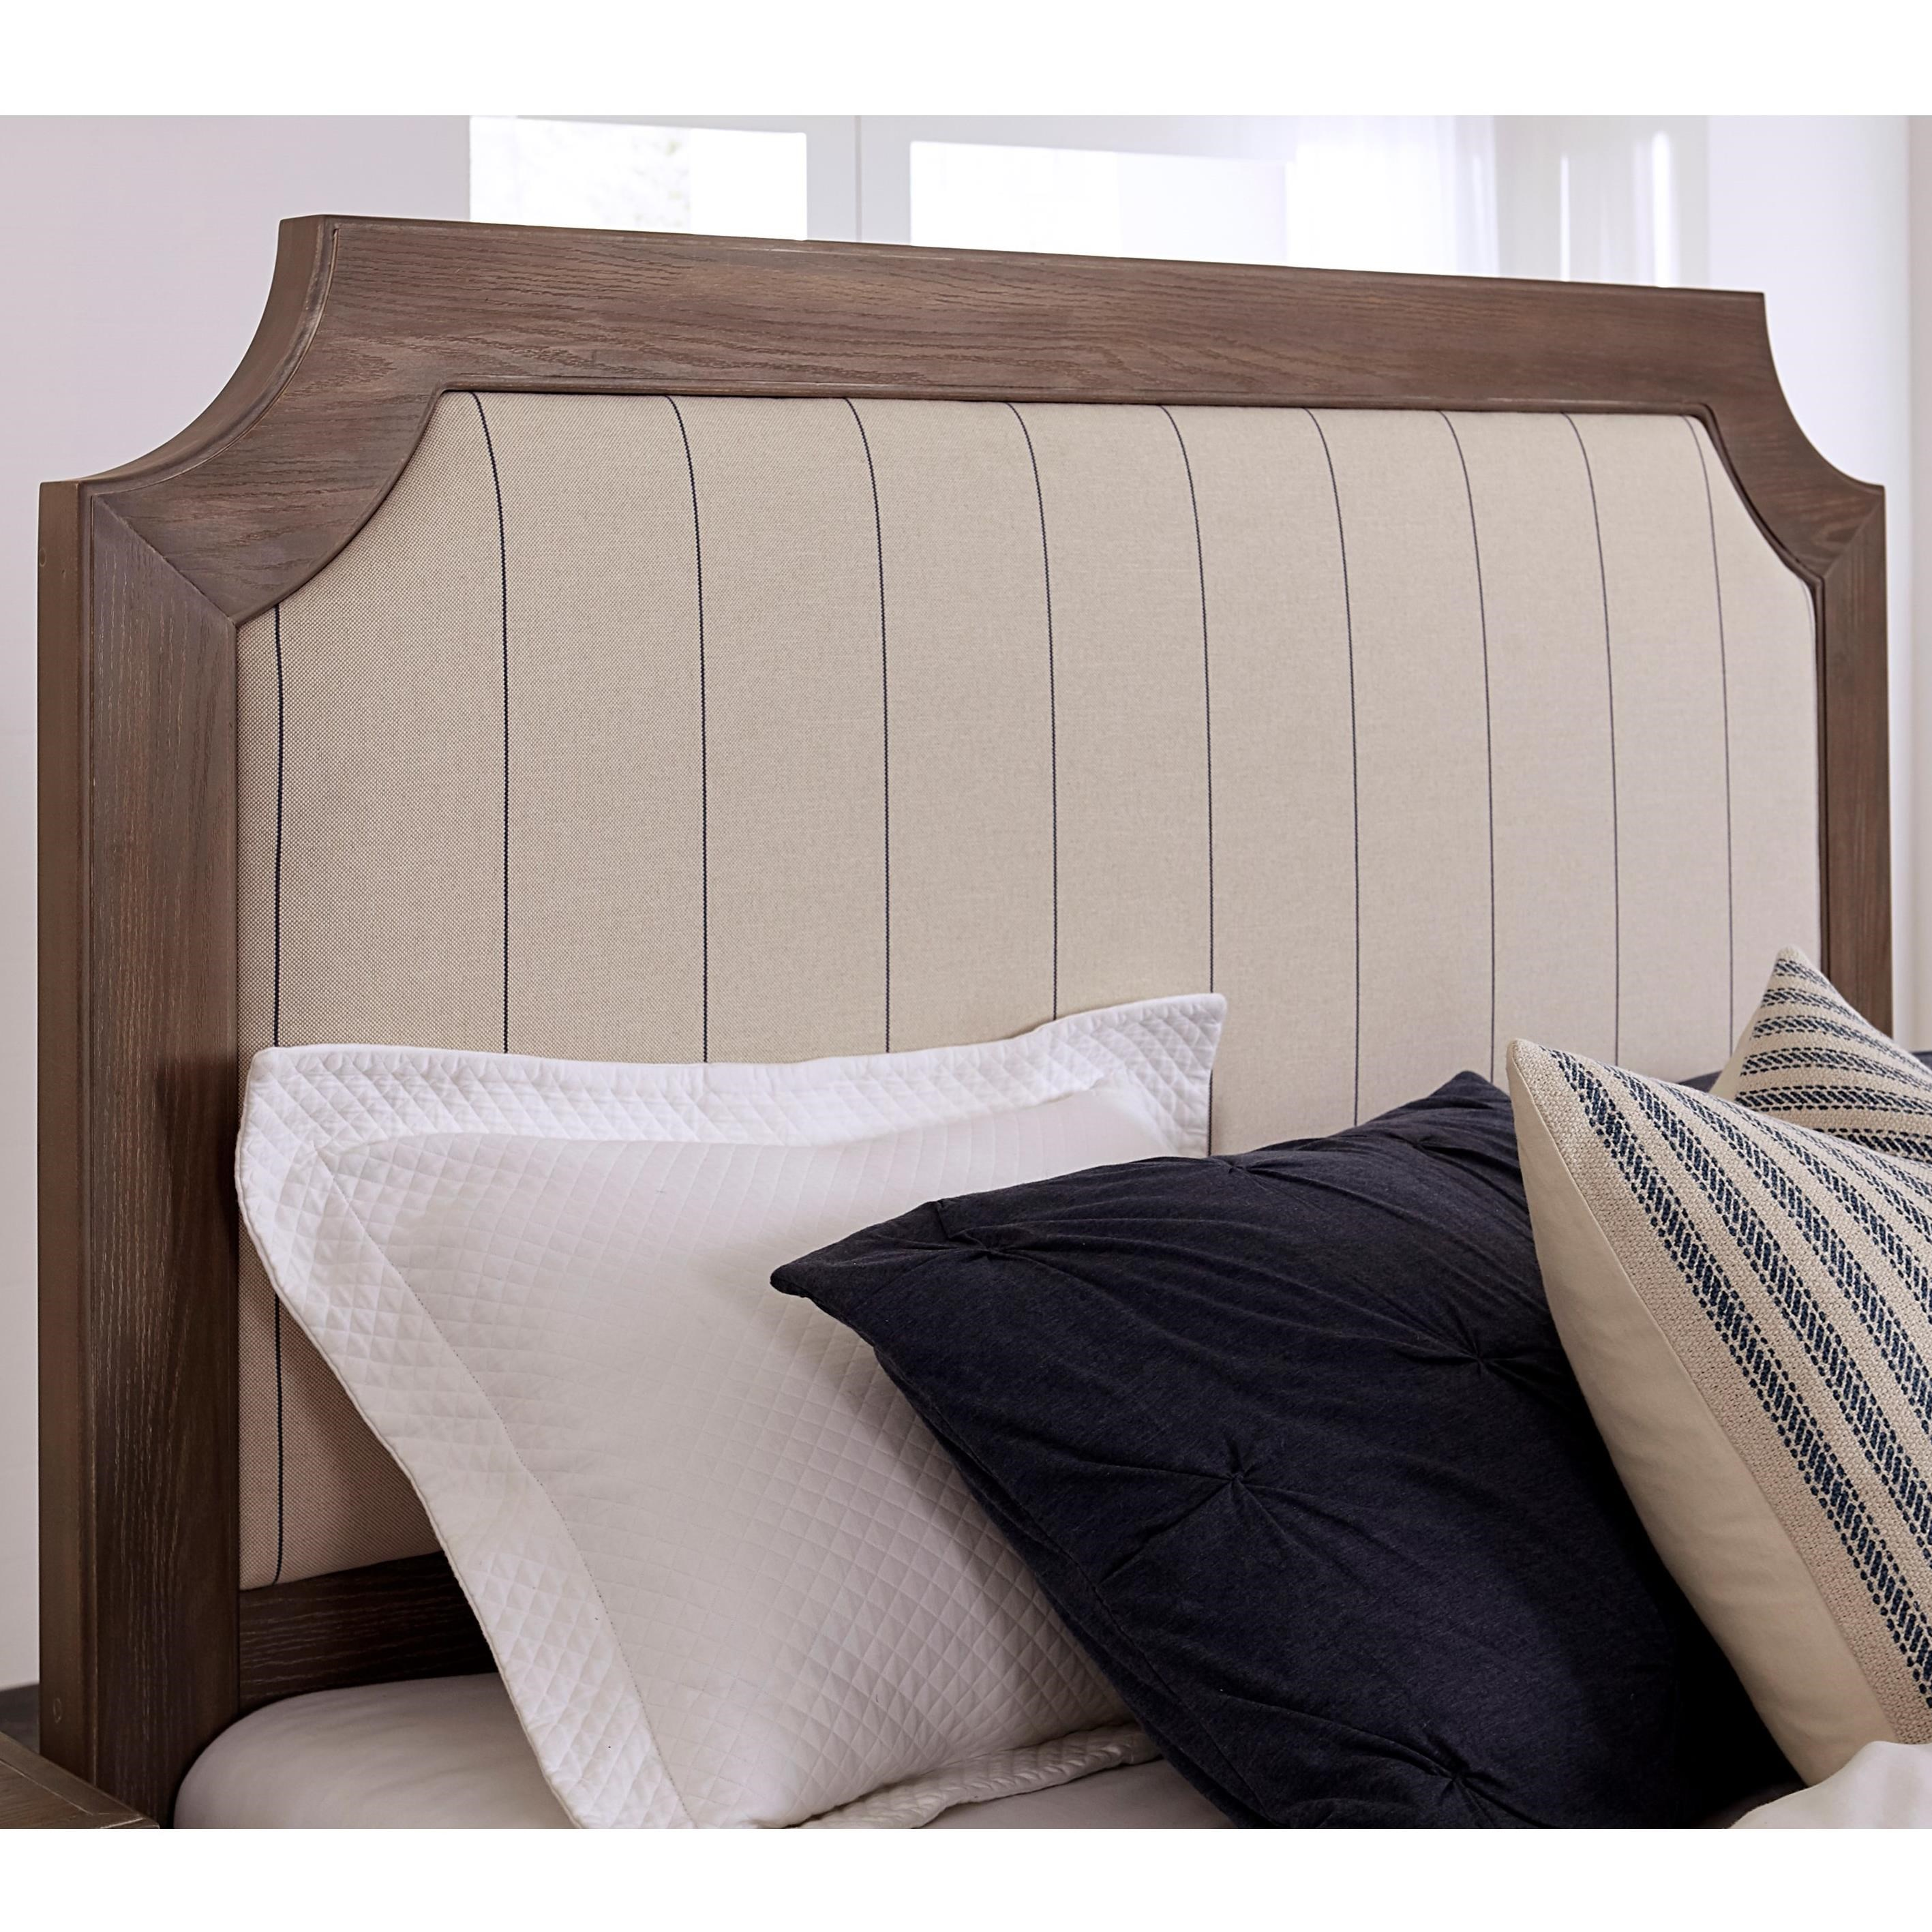 Bungalow Twin Upholstered Headboard by Laurel Mercantile Co. at Powell's Furniture and Mattress